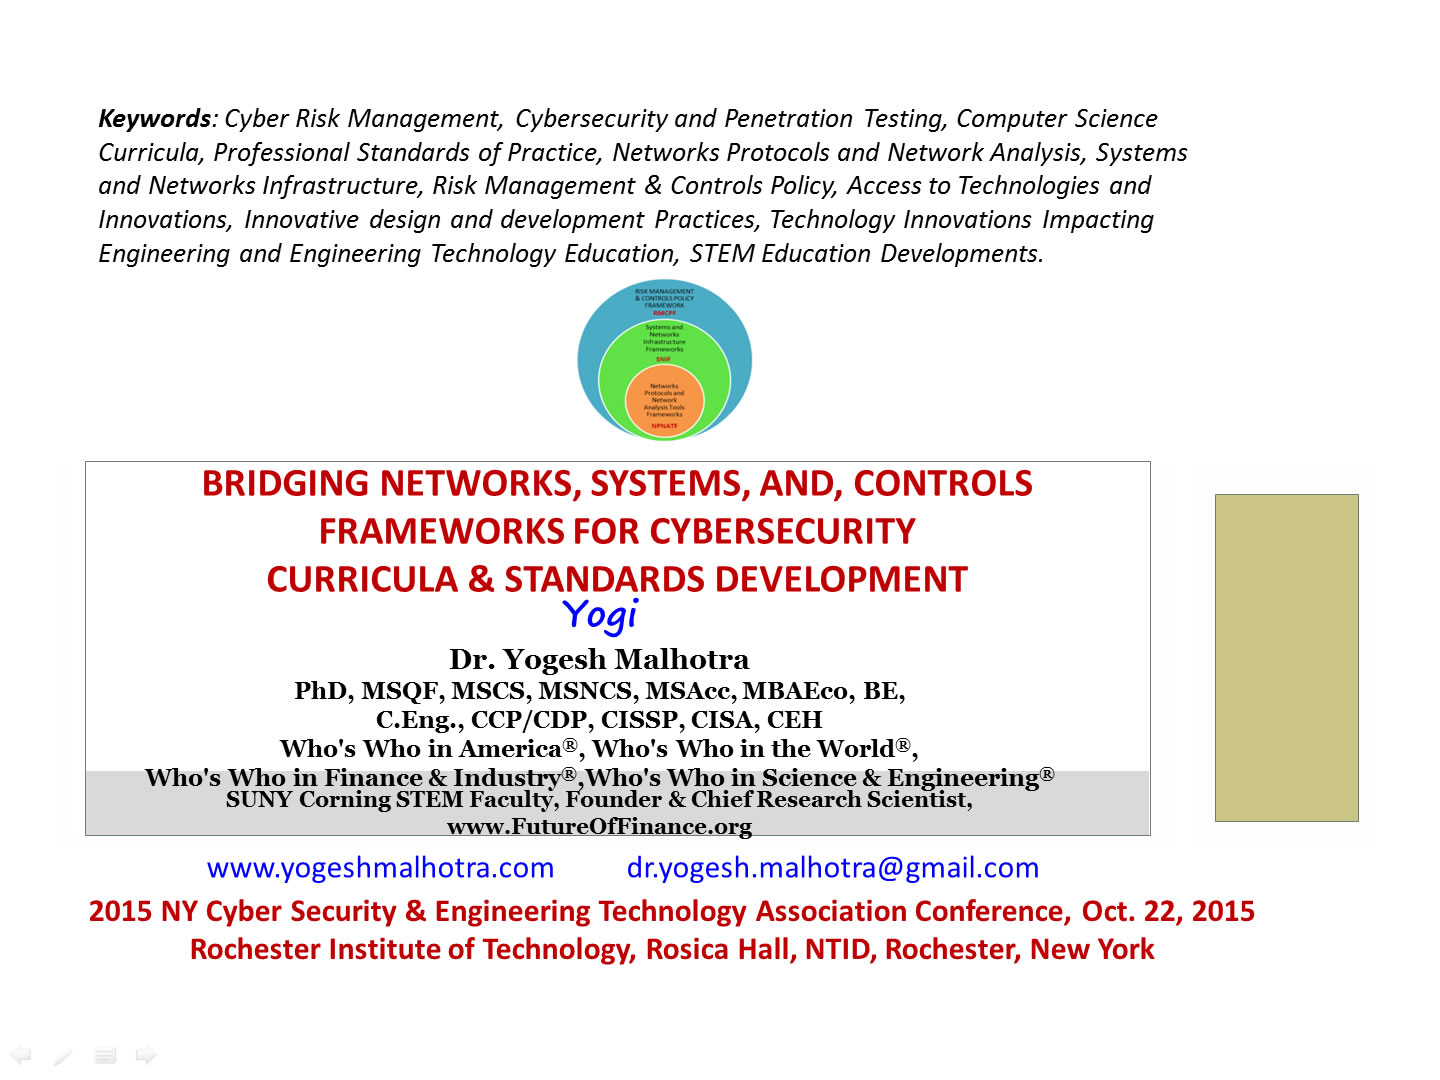 New York Cyber Security and Engineering Technology Association (NYSETA) Conference